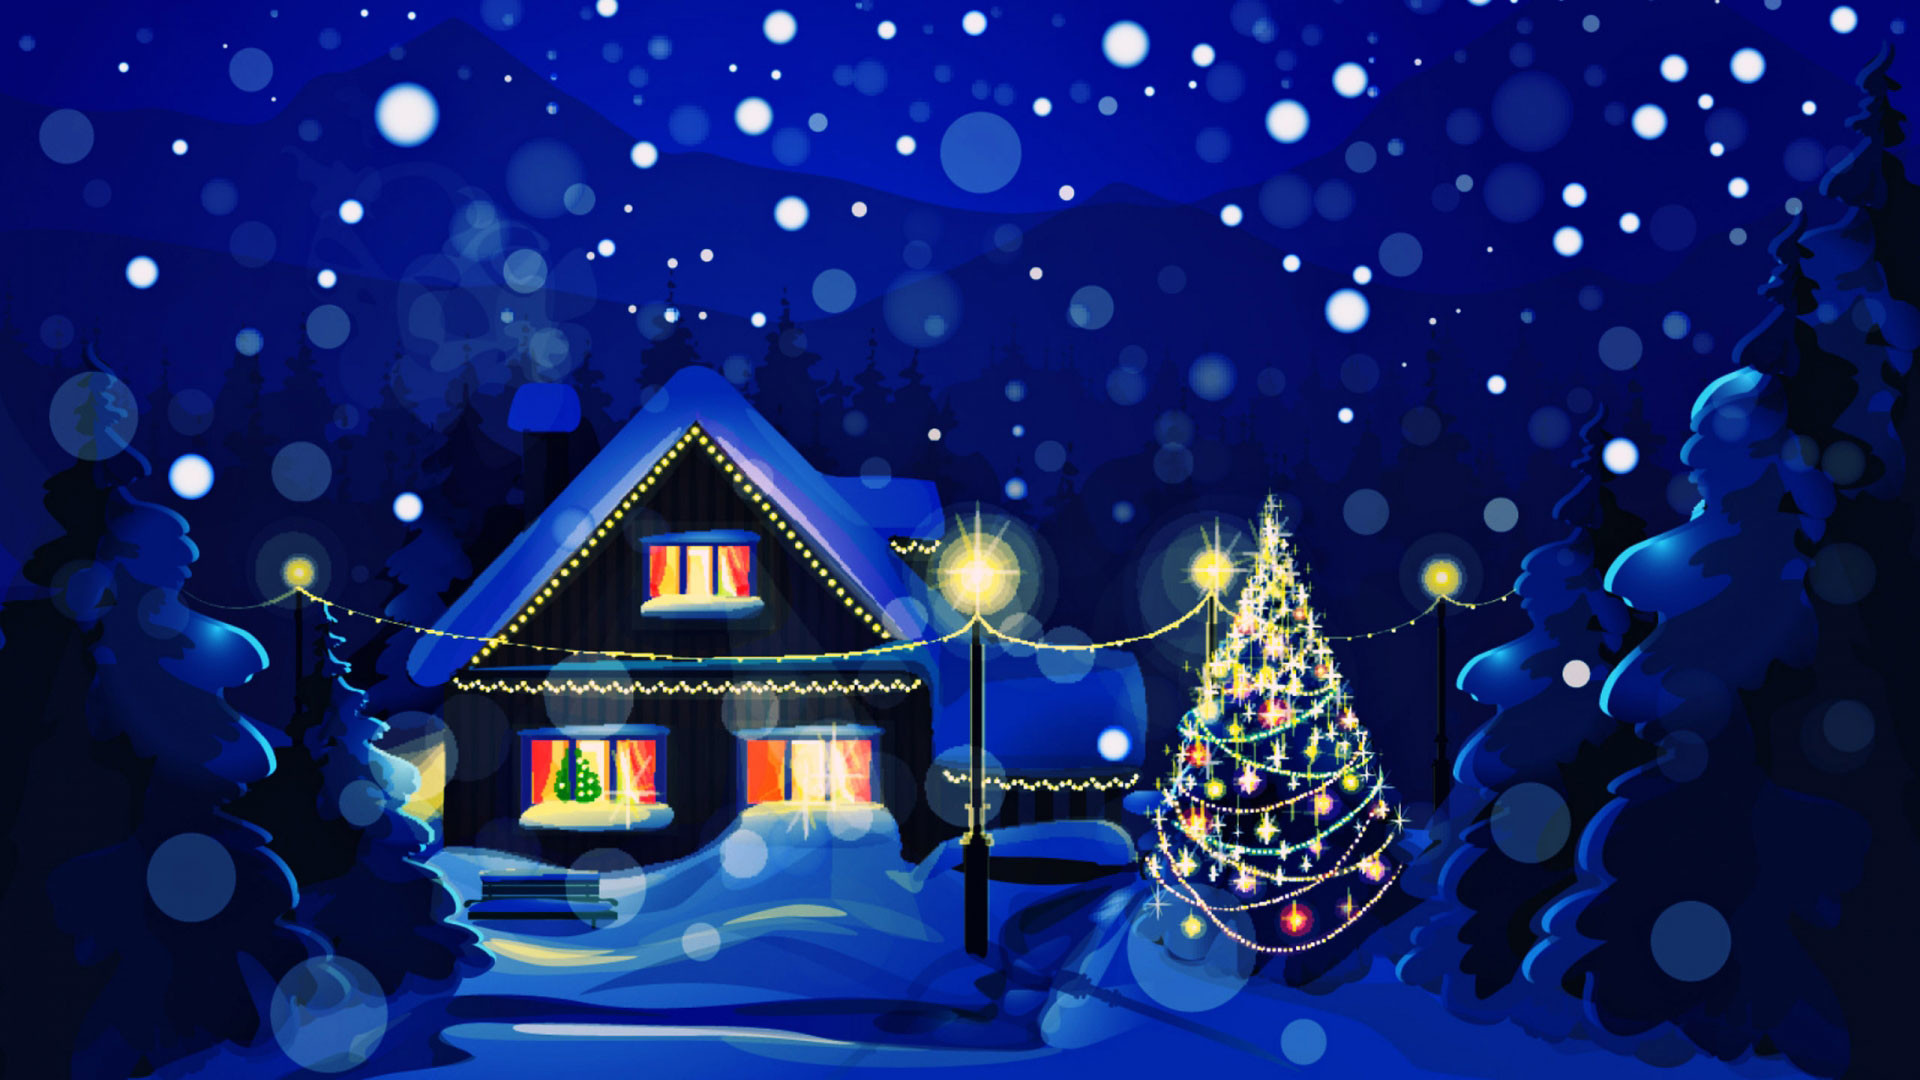 1920x1080 CHRISTMAS CHRISTMAS WINTER NIGHT BLUE DESKTOP BACKGROUND WALLPAPER .